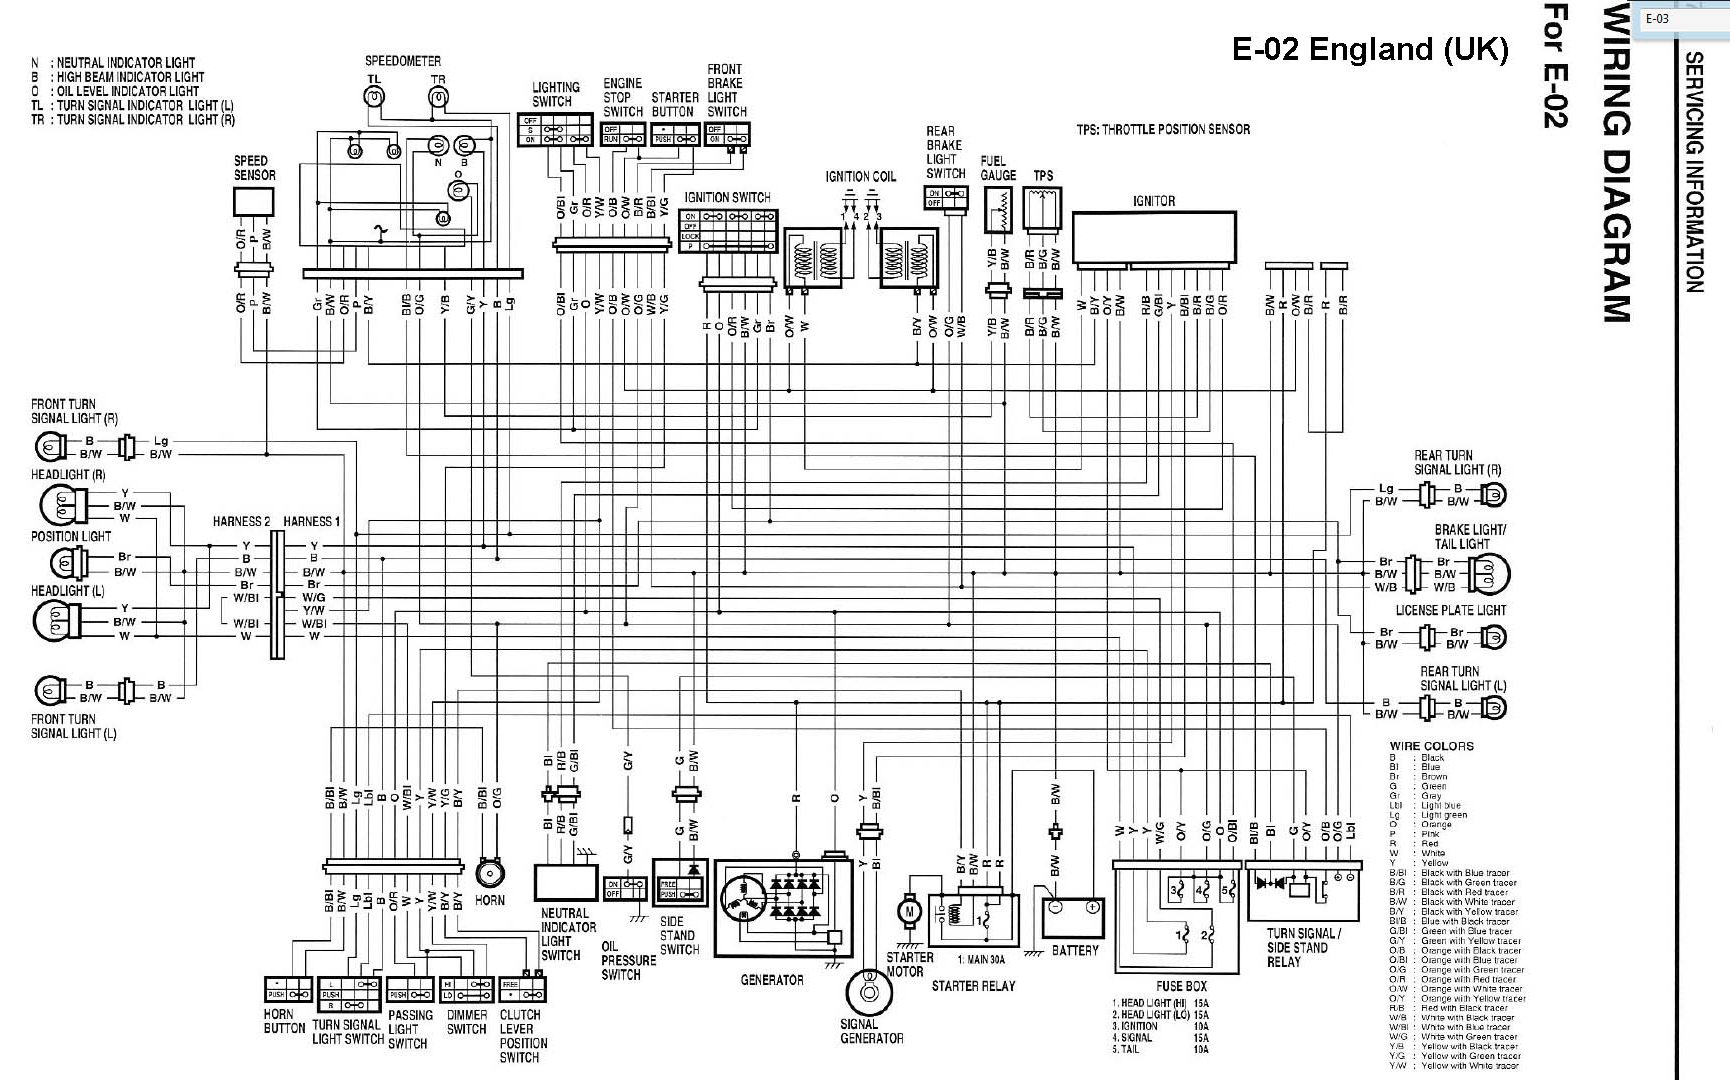 Modern Hayabusa Wiring Diagram Collection - Electrical and Wiring ...